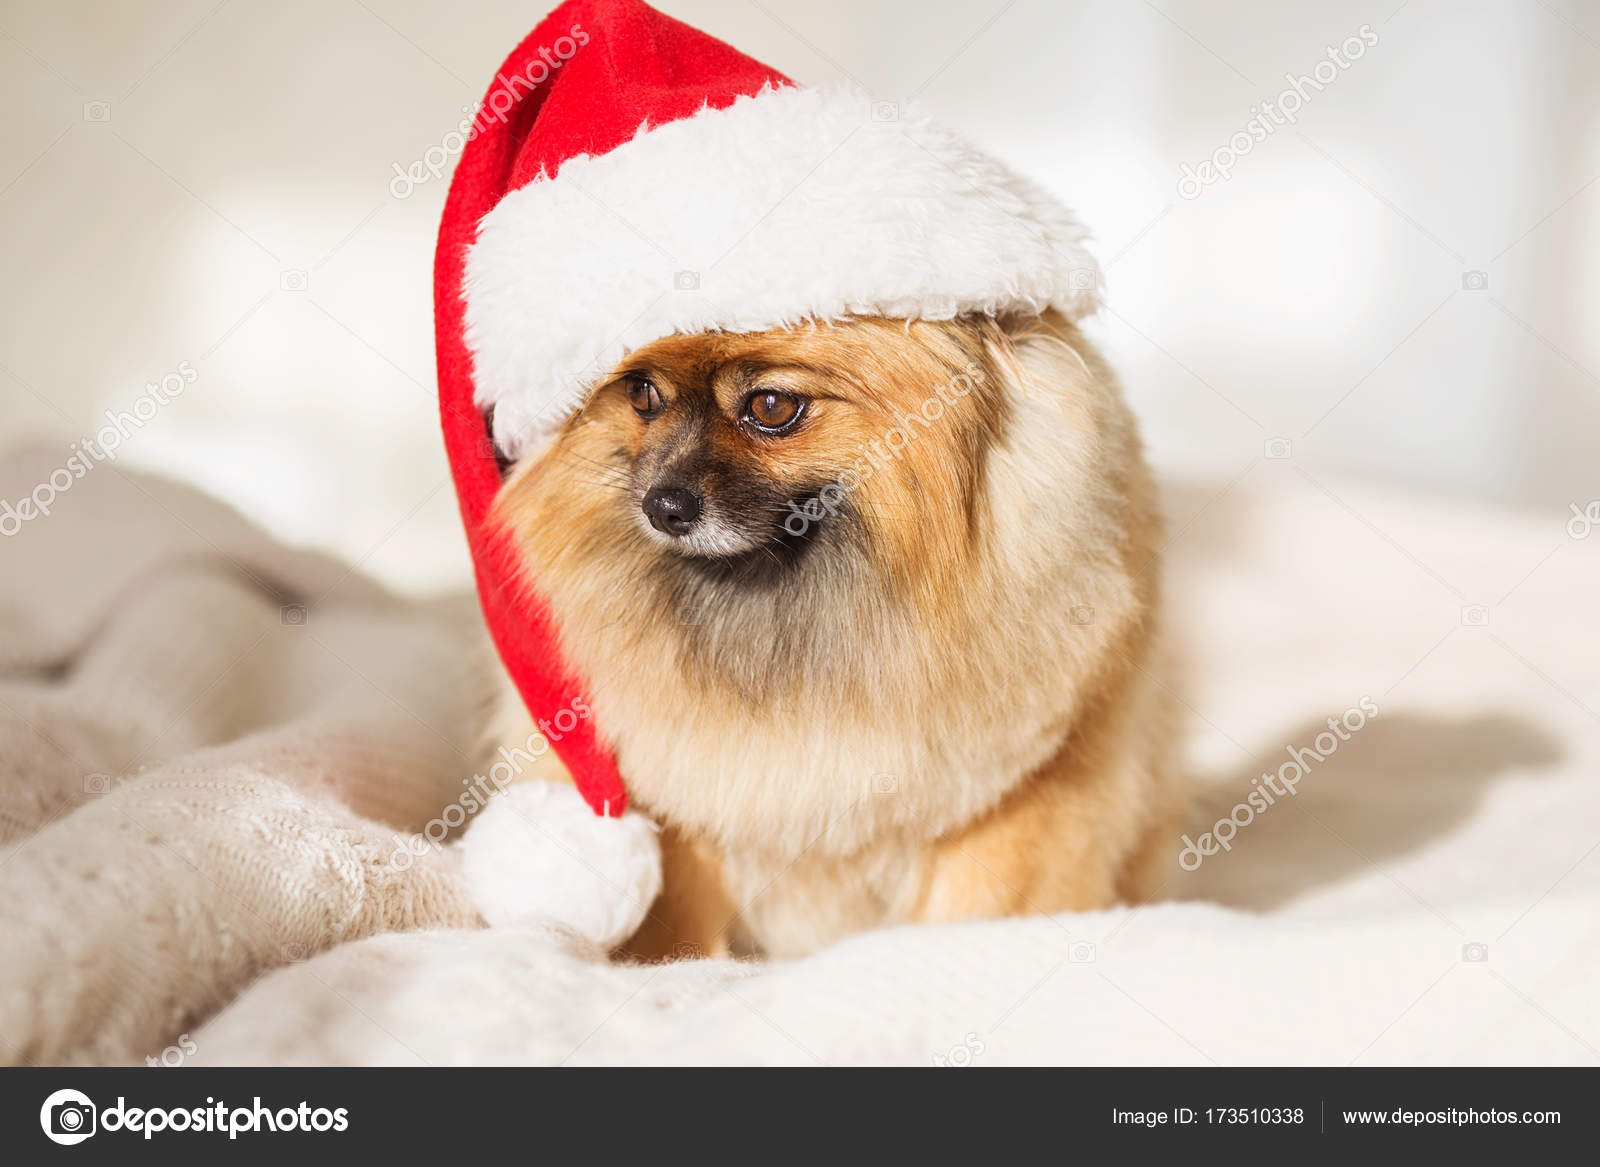 beautiful pomeranian puppy dog in red santa hat christmas dog happy new year card 2018 with the year dog symbol photo by natazhekova